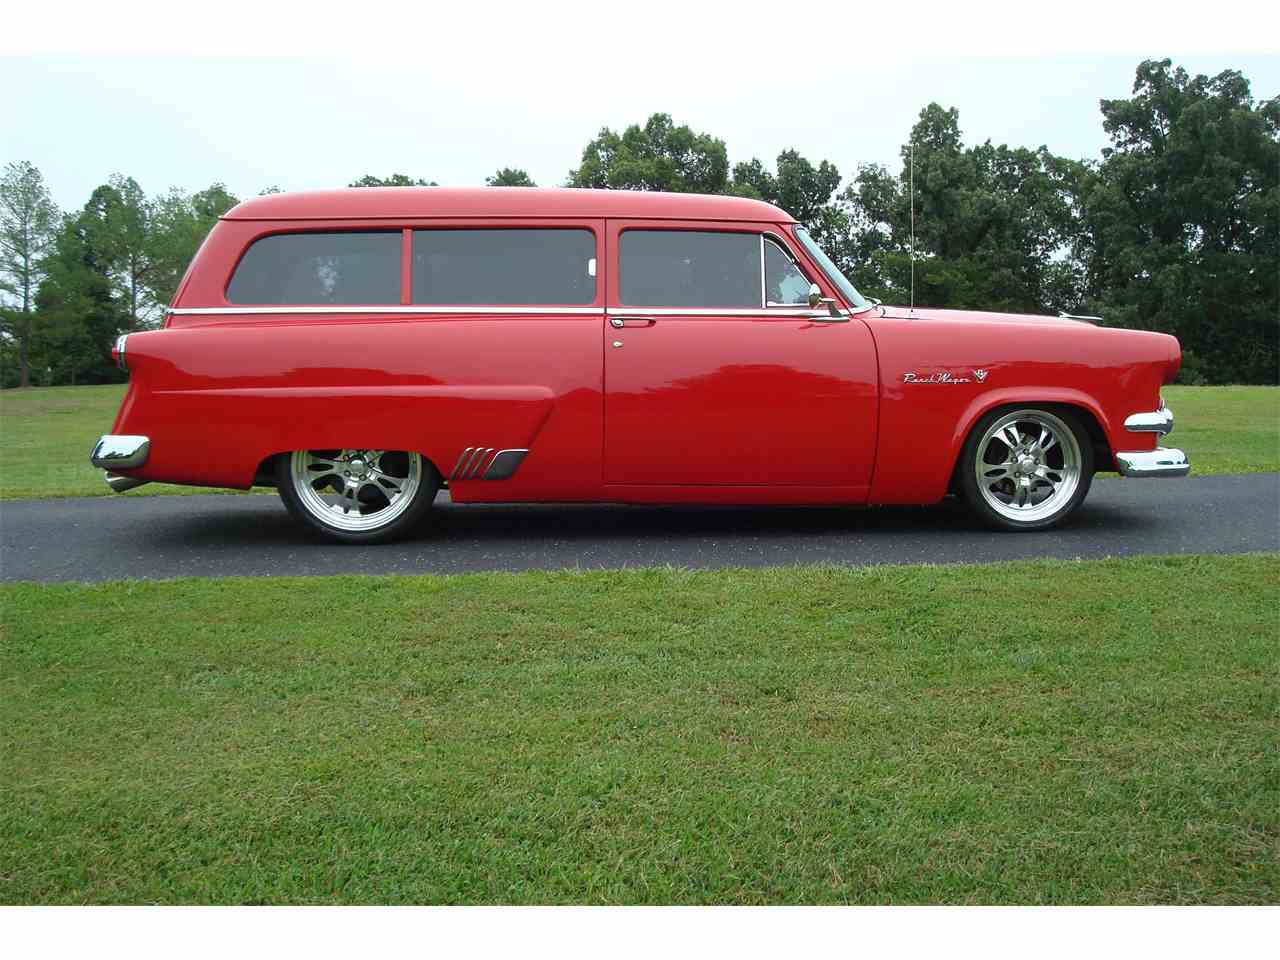 Large Picture of 1954 Ford Ranch Wagon Offered by a Private Seller - C0WR